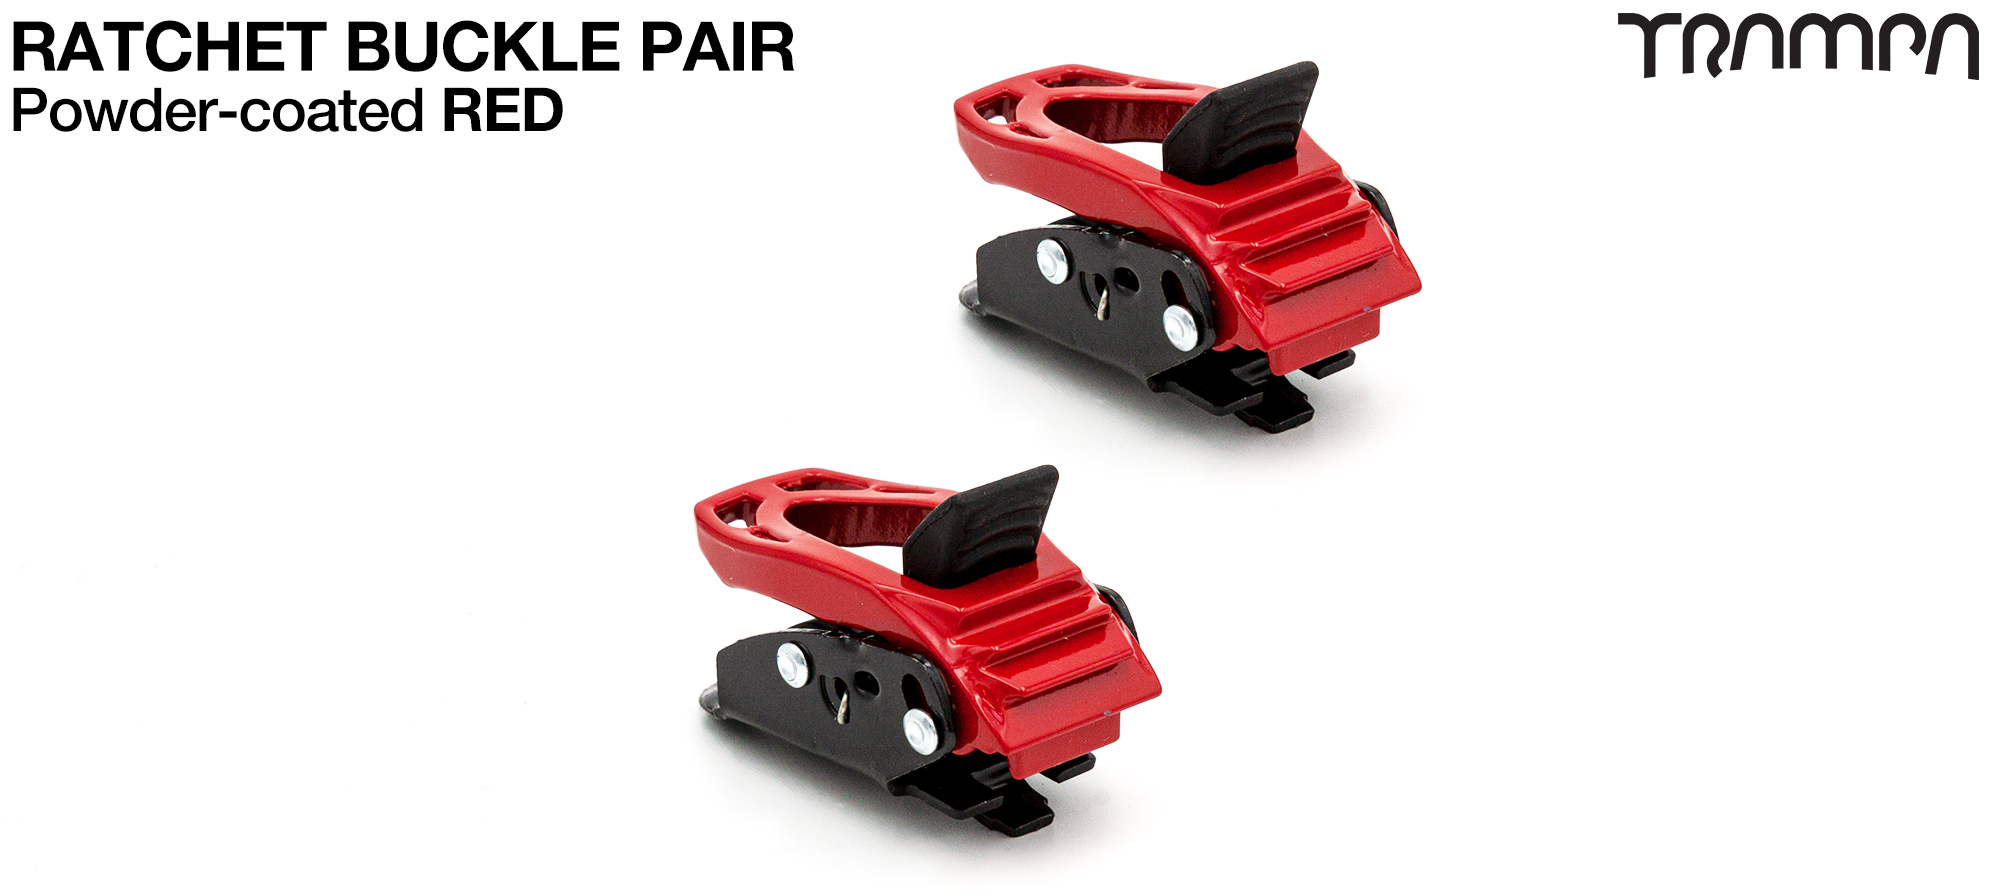 RED Powder Coated Ratchet Buckle (+£12.50)